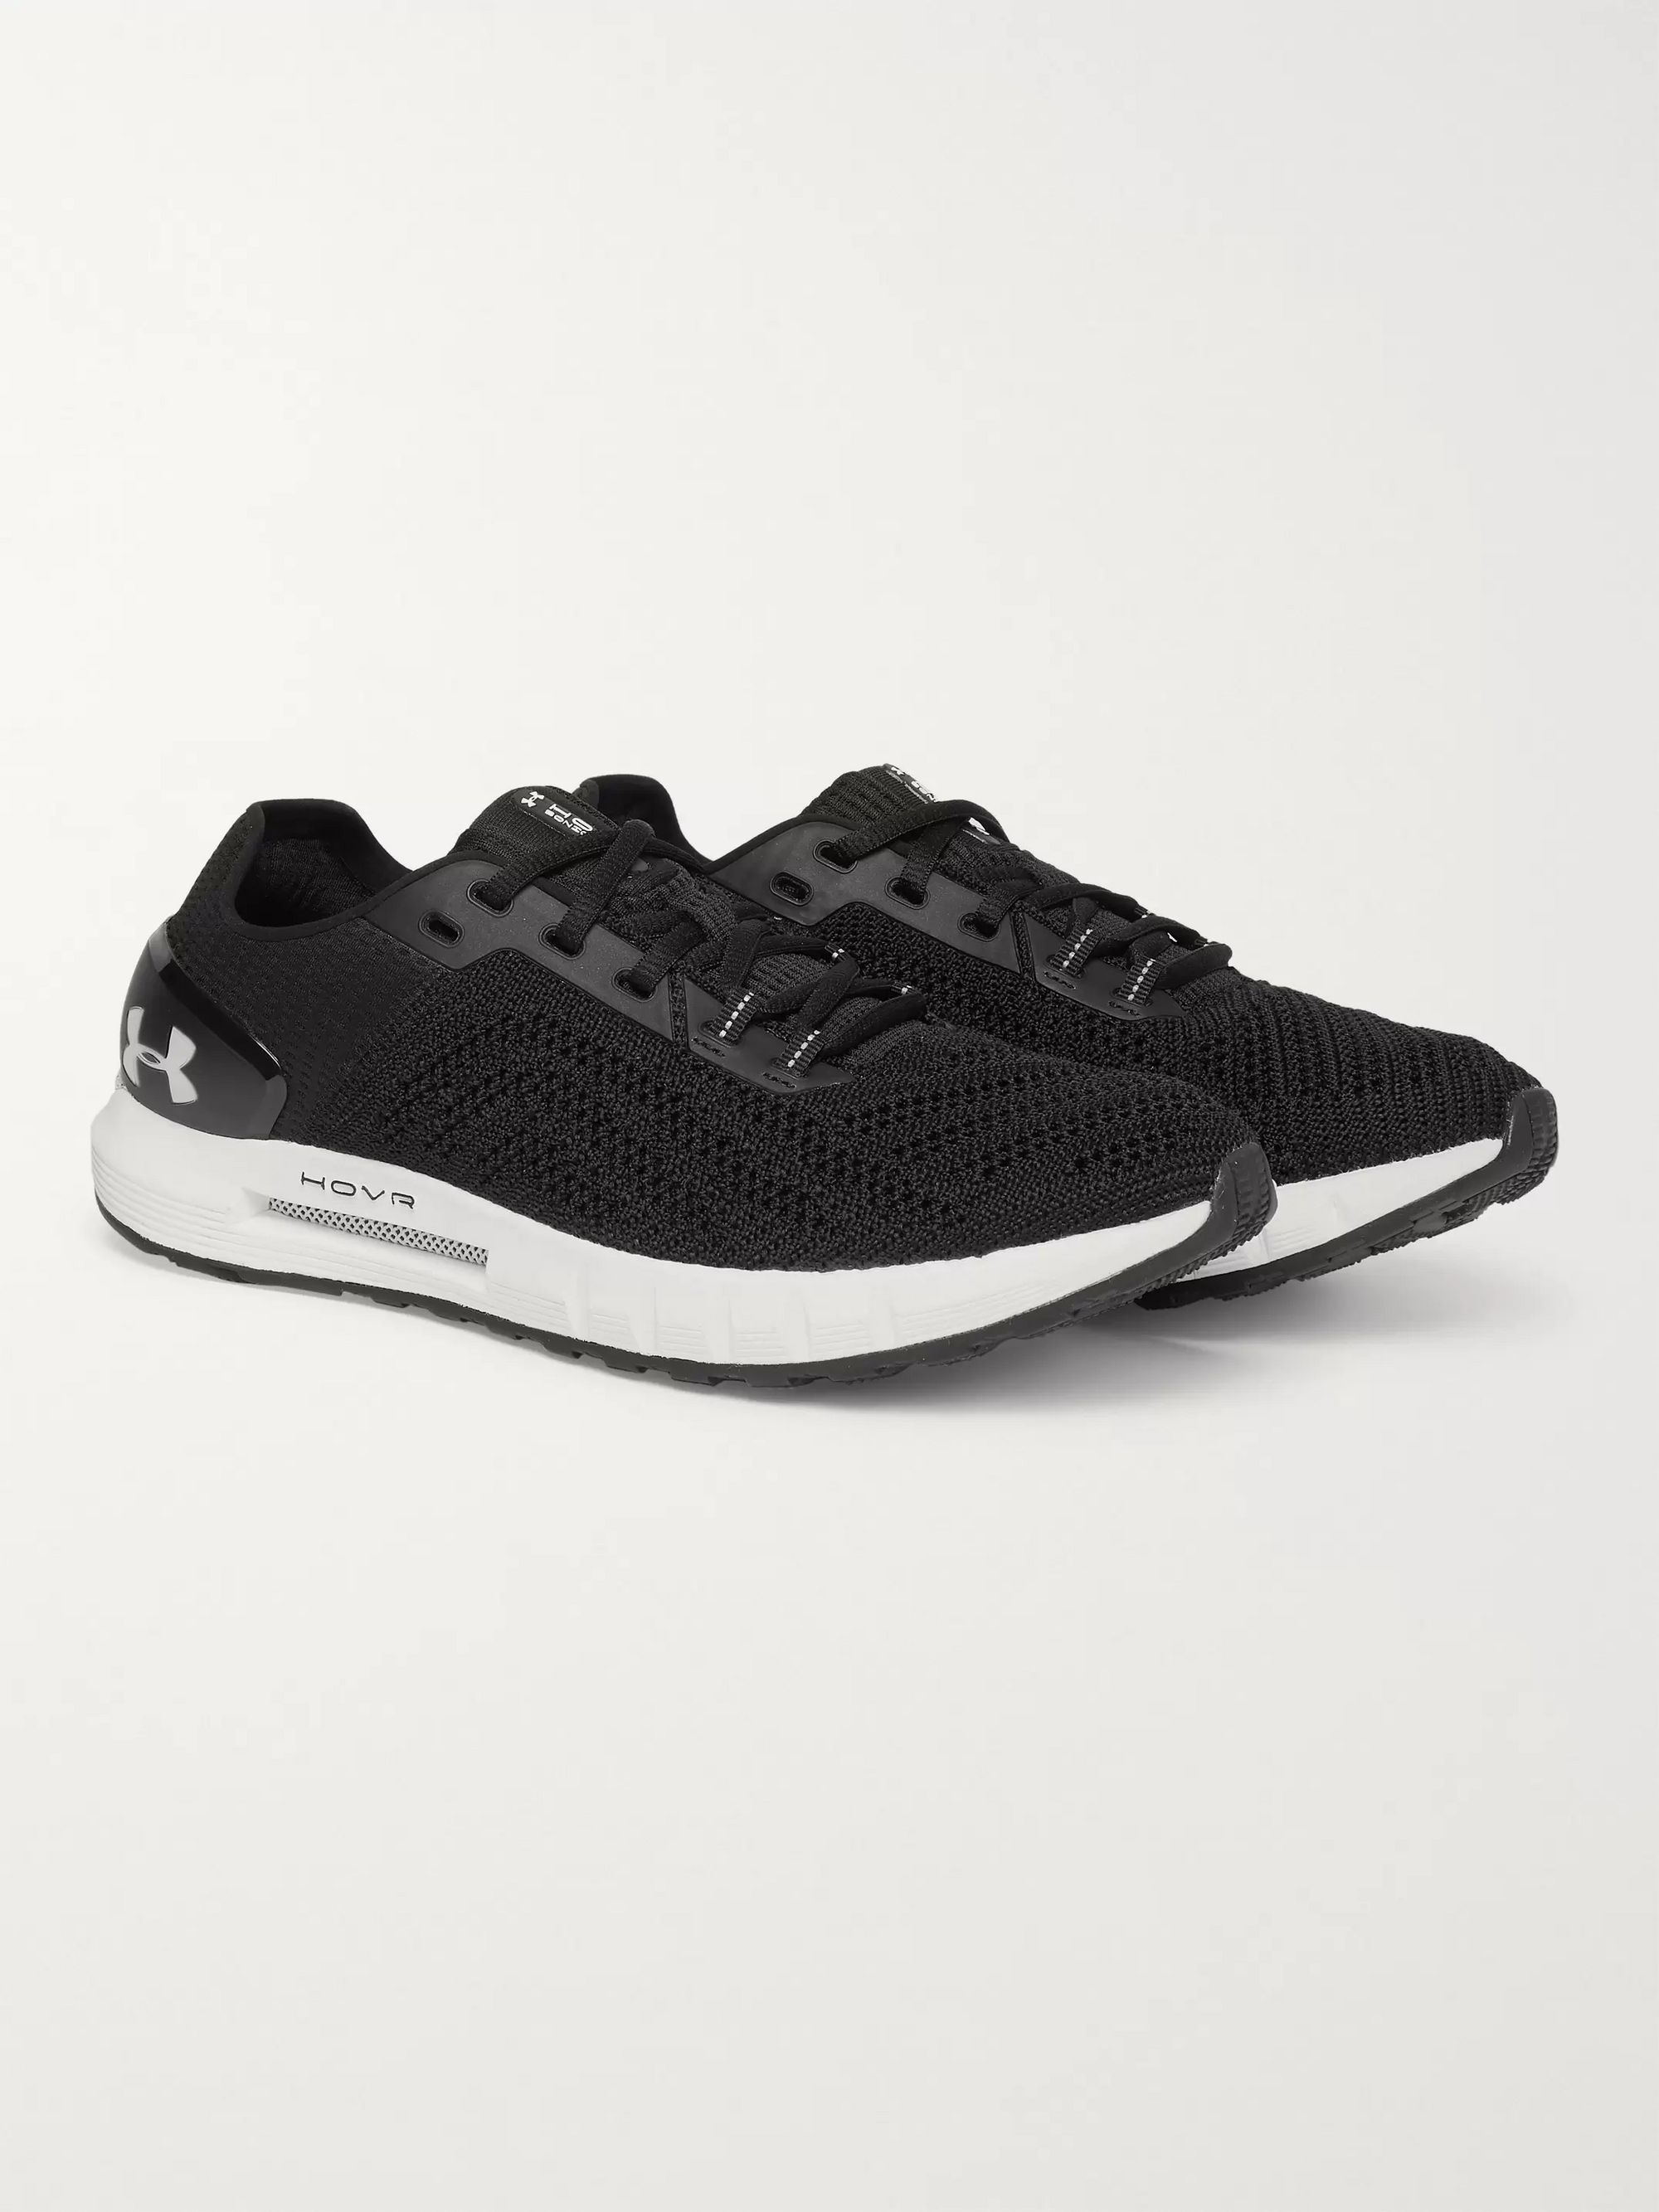 Under Armour UA HOVR Sonic 2 Microthread and Rubber Running Sneakers